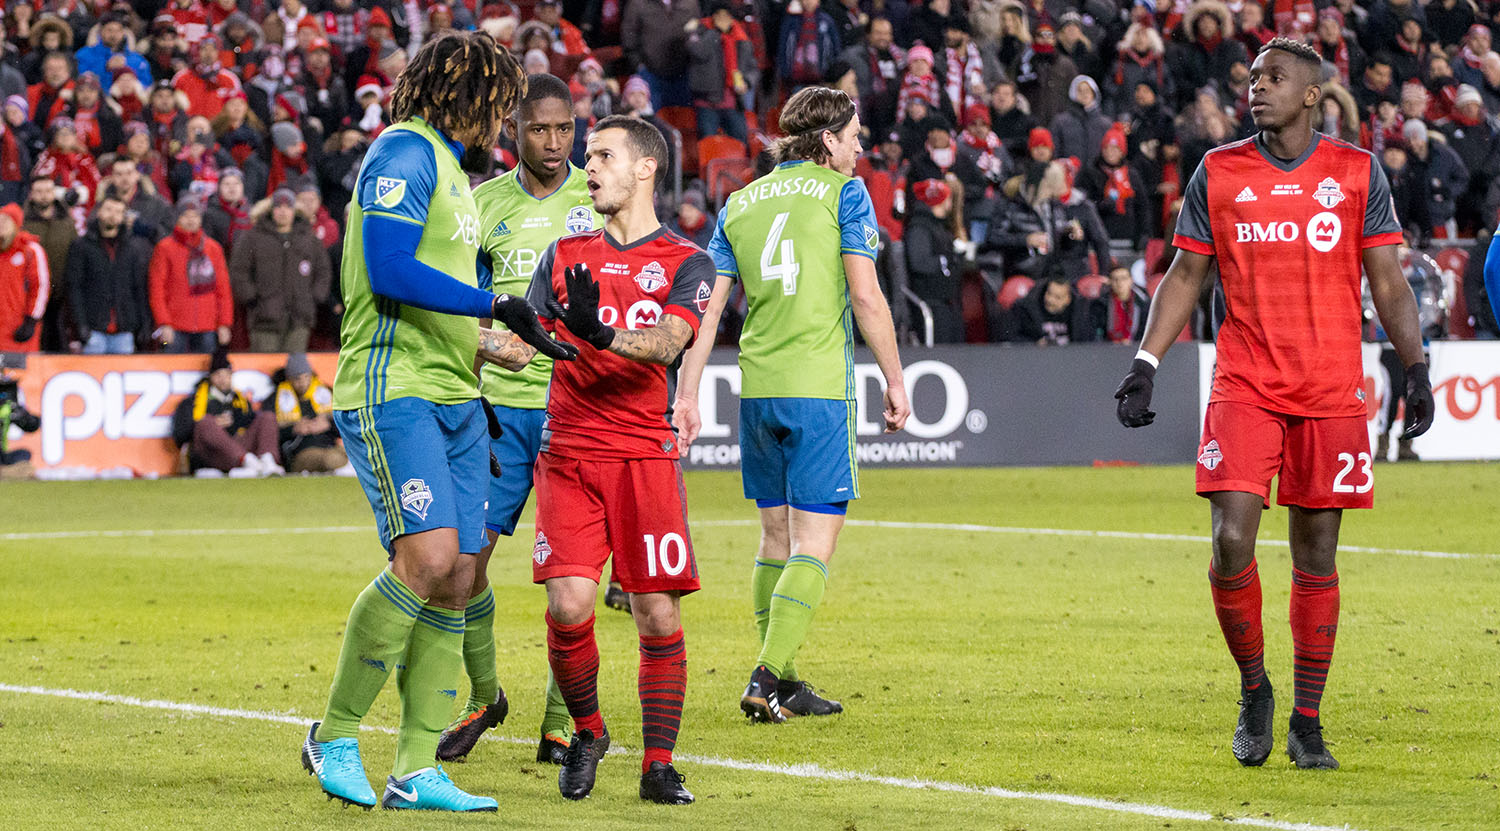 Sebastian GIovinco and Seattle Sounders' Roman Torres get into it during the second half of the MLS Cup Final on December 9, 2017.Image by Dennis Marciniak of denMAR Media.